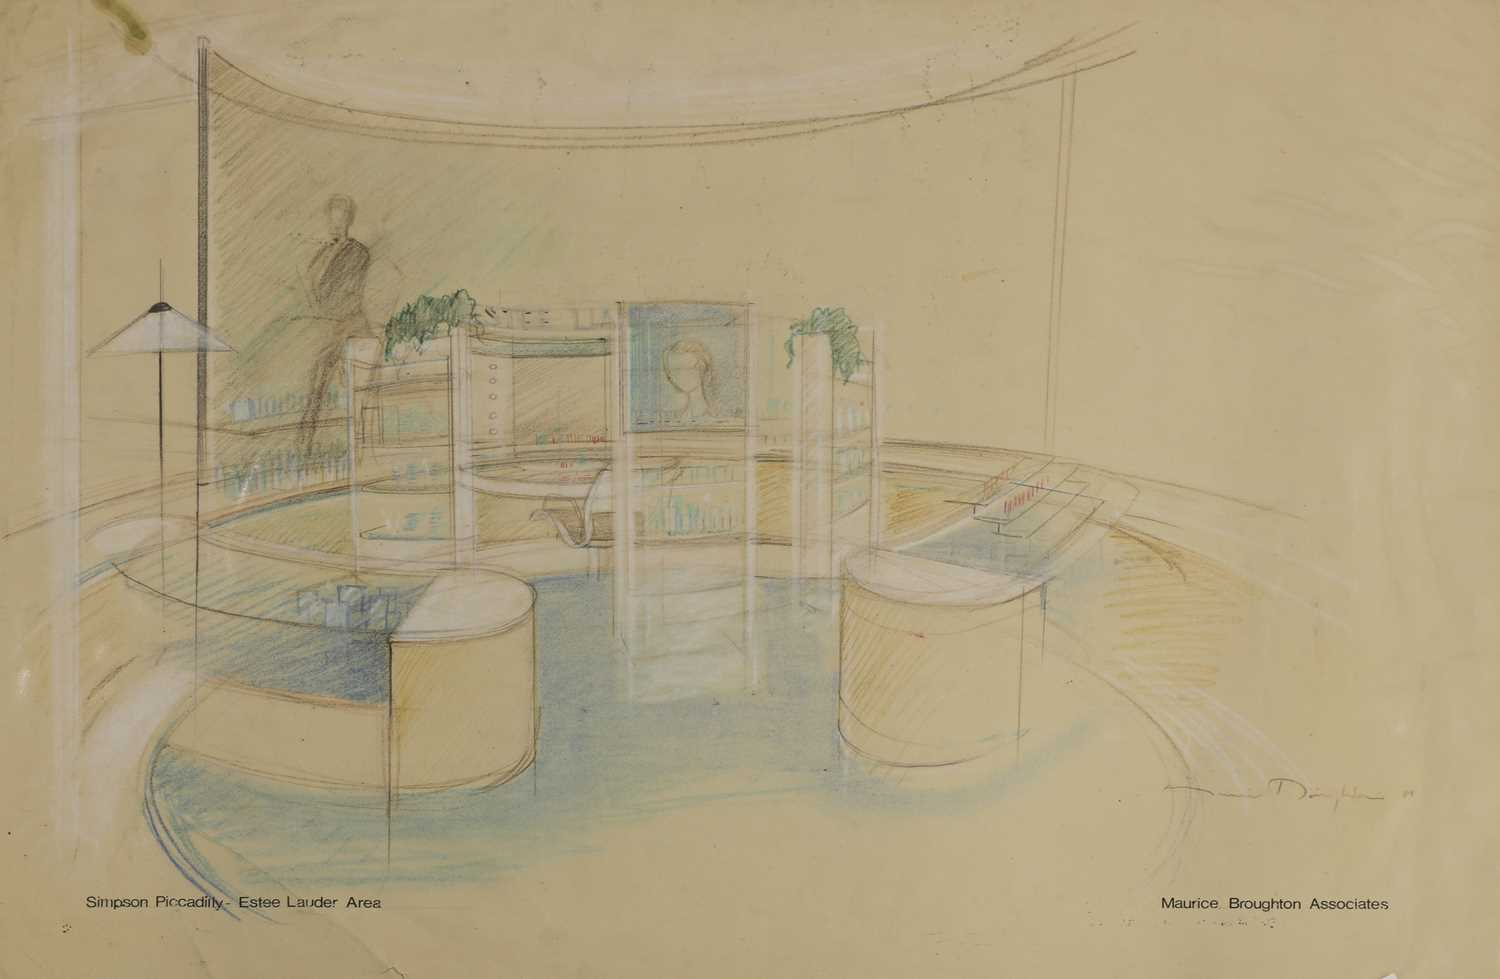 Maurice Broughton Associates, - Image 6 of 7